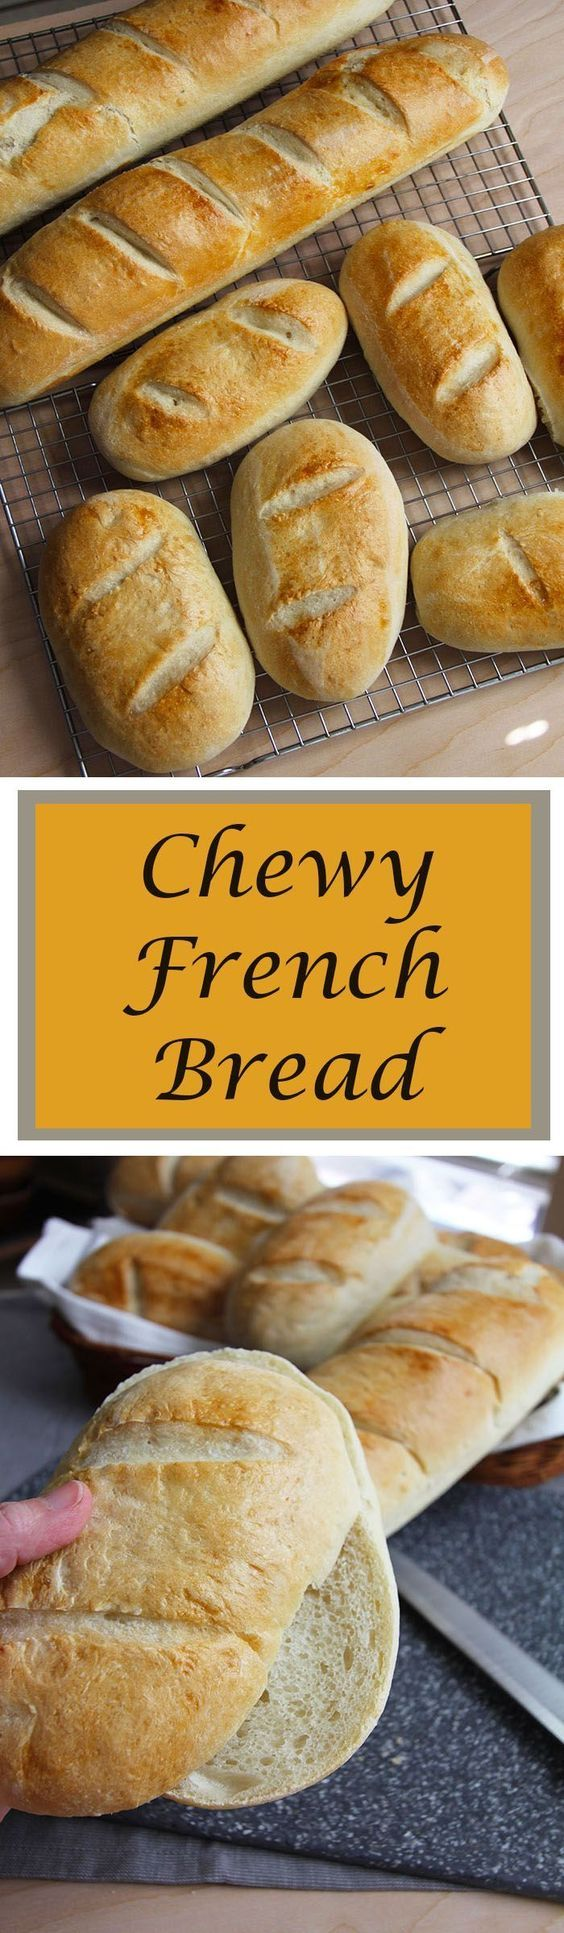 """This five ingredient french bread recipe is super easy to make and so delicious. The recipe came from my momma's kitchen, featured on my blog as """"Norma Jean's Kitchen""""."""